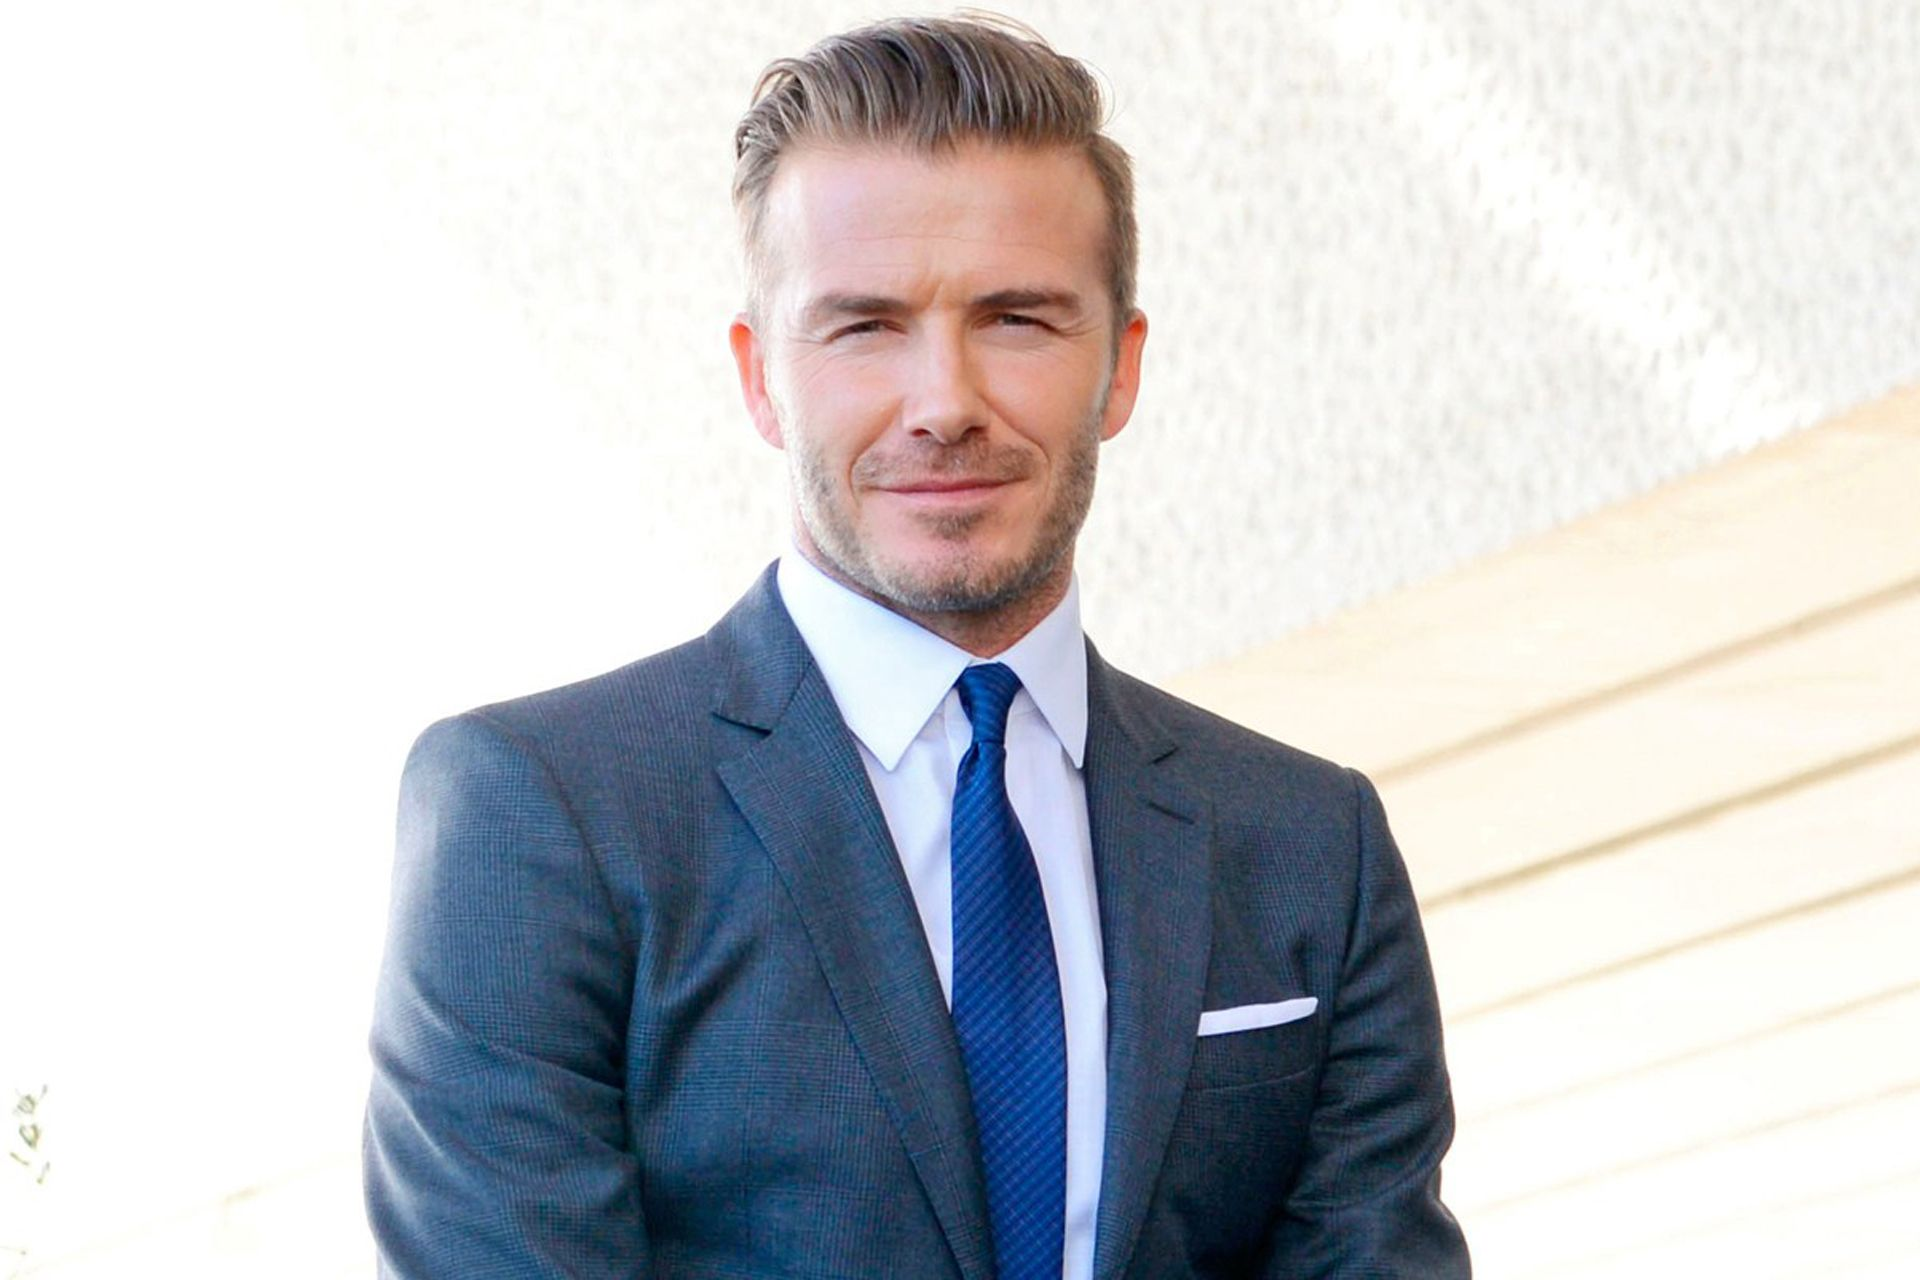 essay my idol david beckham